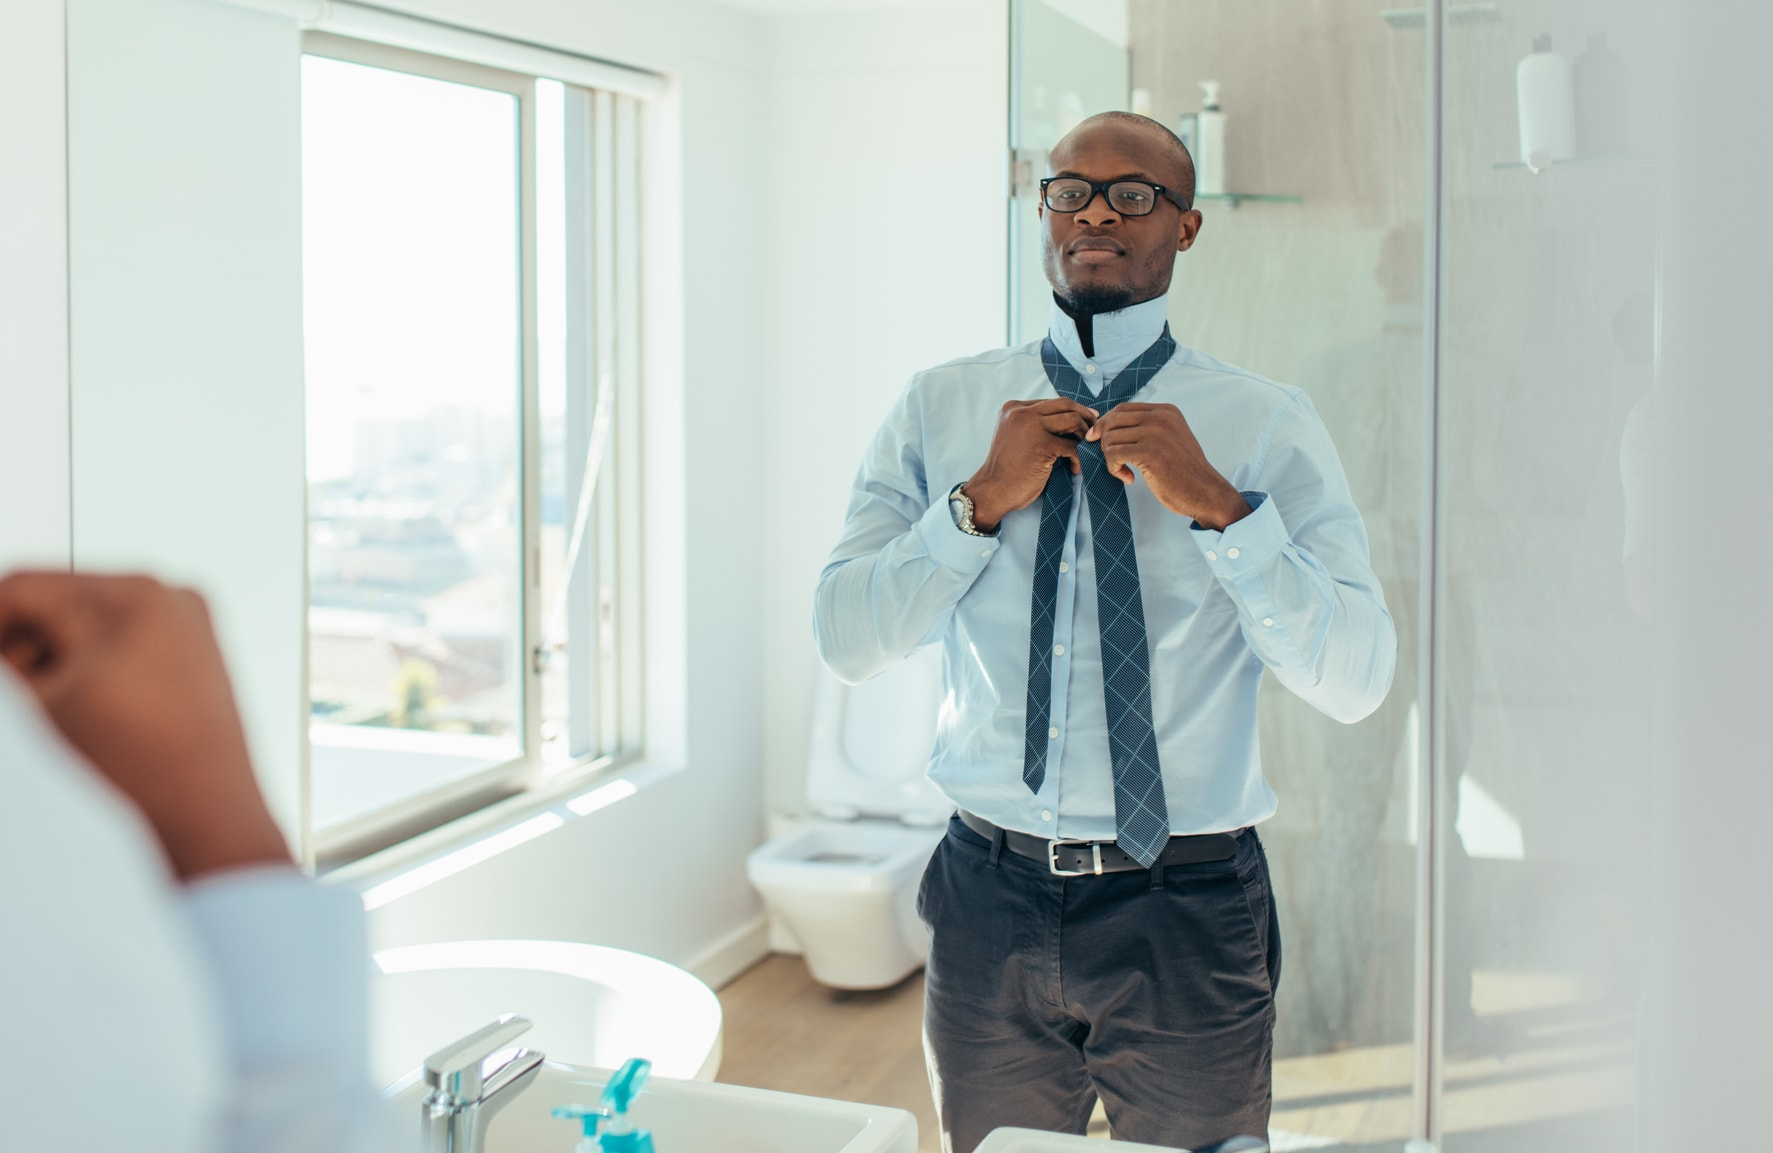 Man Getting Dressed for Work